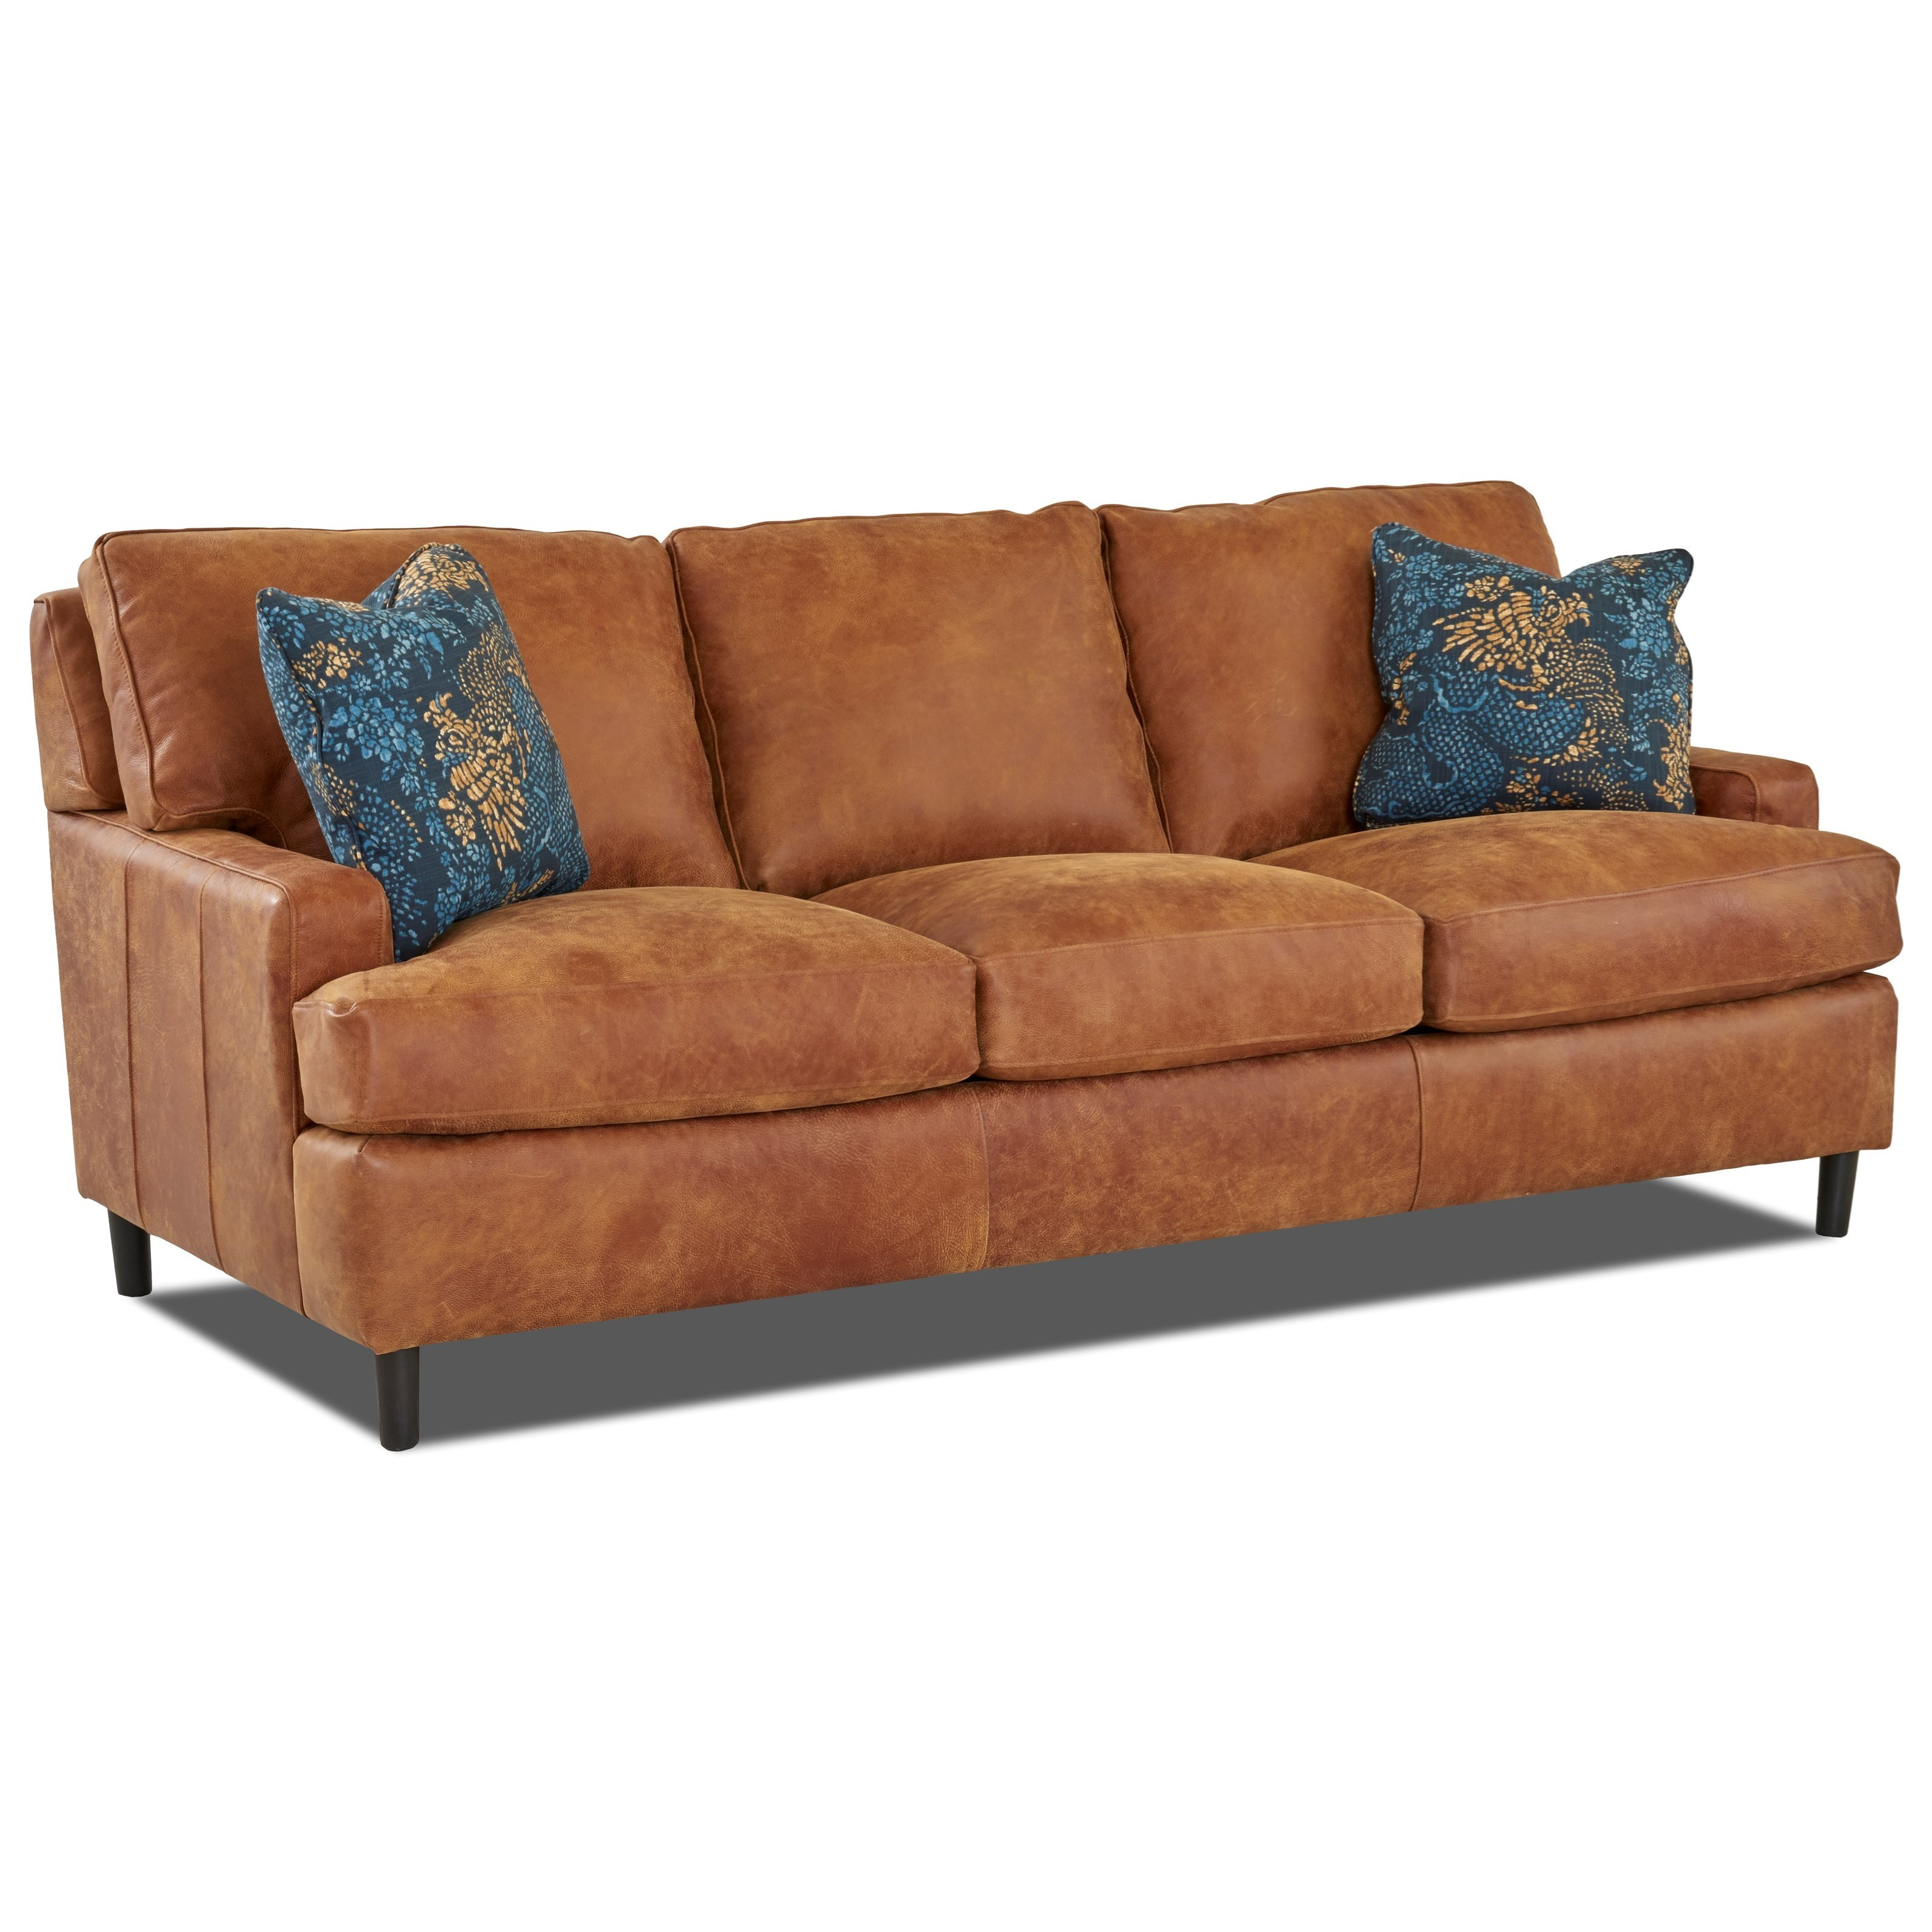 Contemporary Leather Sofa with Arm Pillows